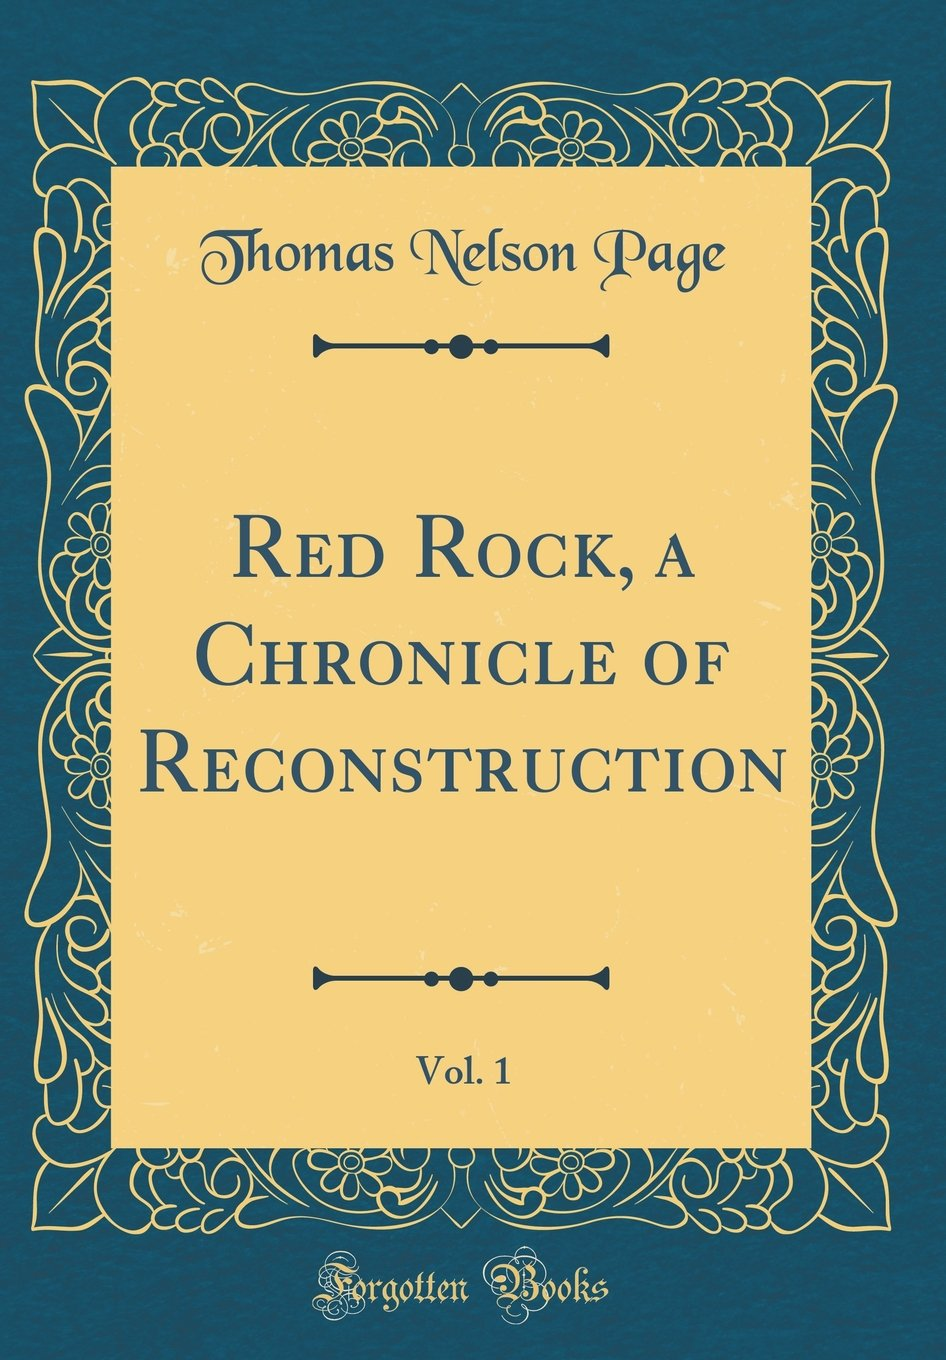 Red Rock, a Chronicle of Reconstruction, Vol. 1 (Classic Reprint) PDF